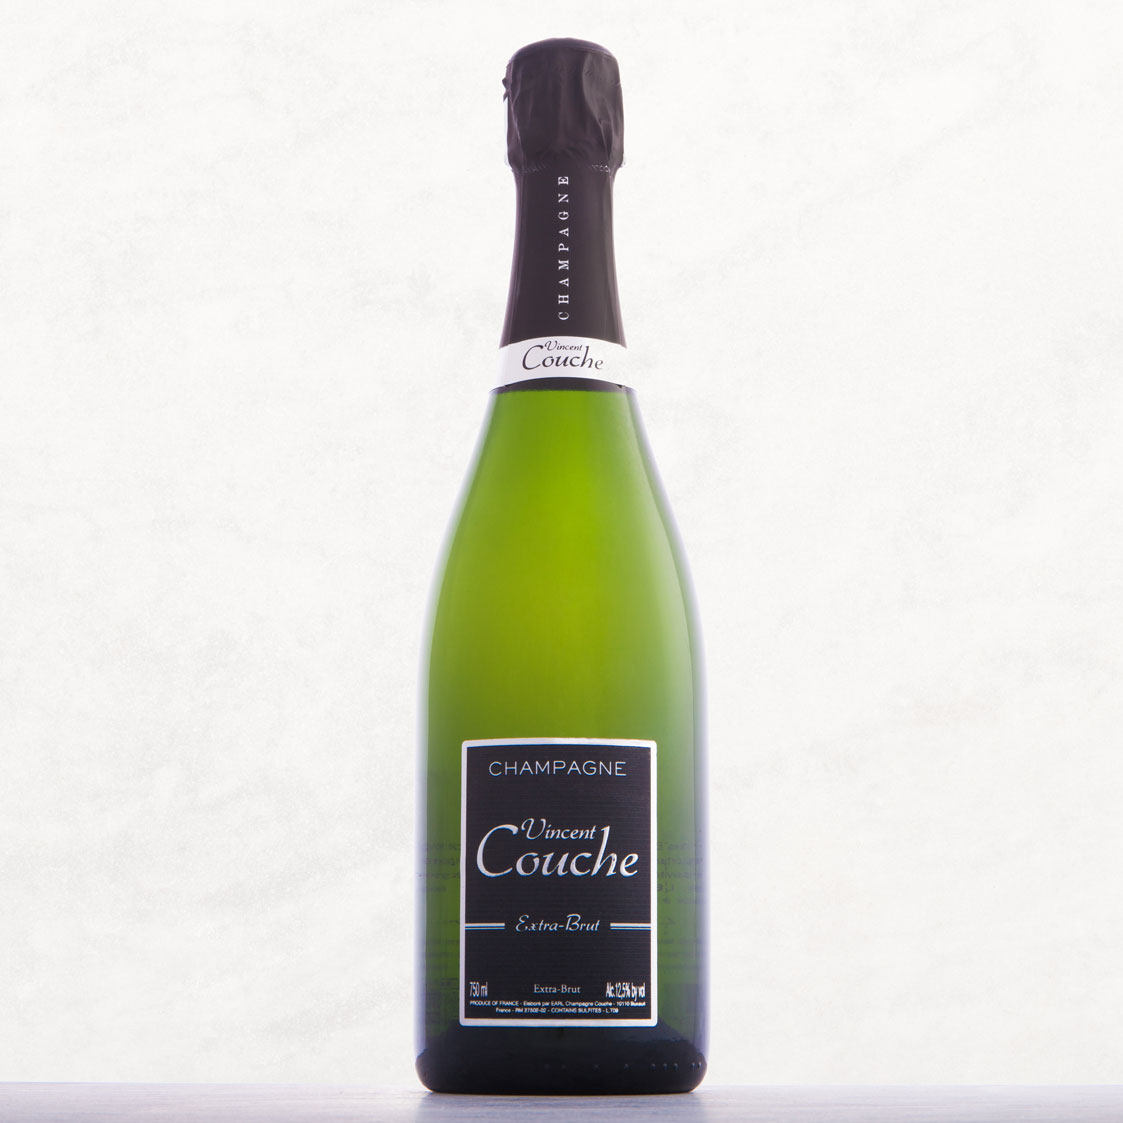 CHAMPAGNE VINCENT COUCHE,  EXTRA BRUT 37,5 cl